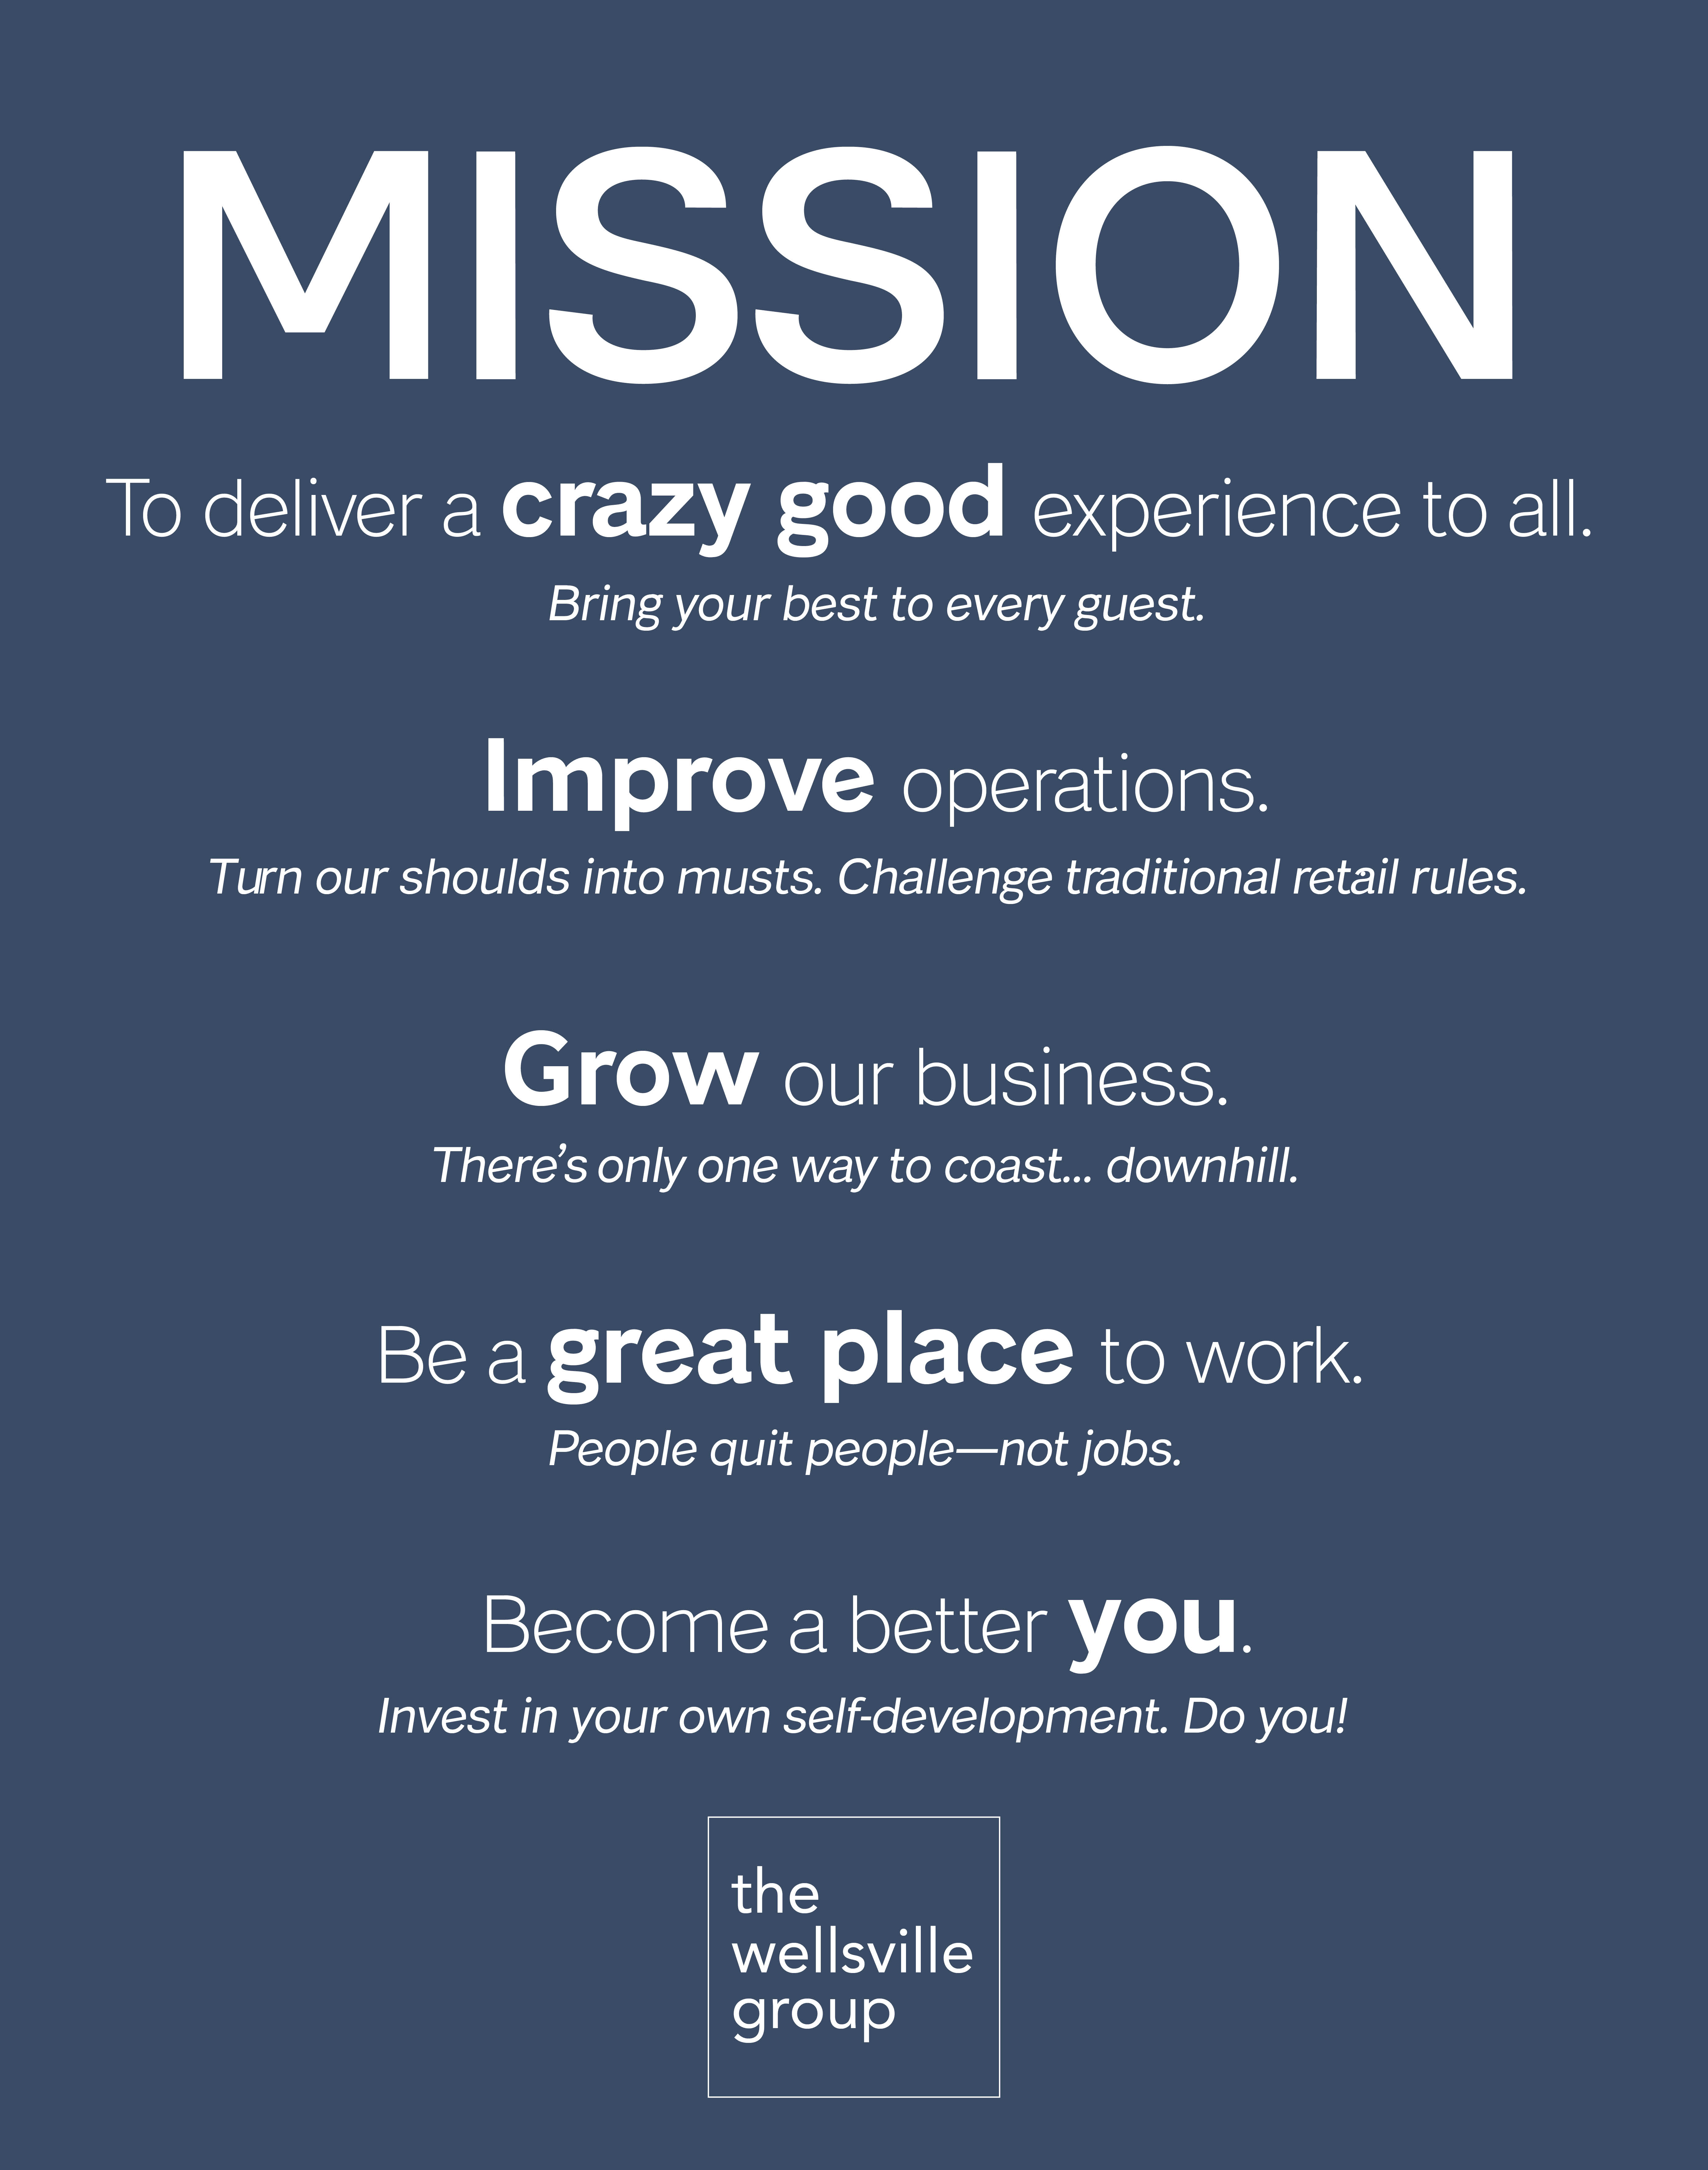 Our Vision Mission And Values Ashley Homestore New